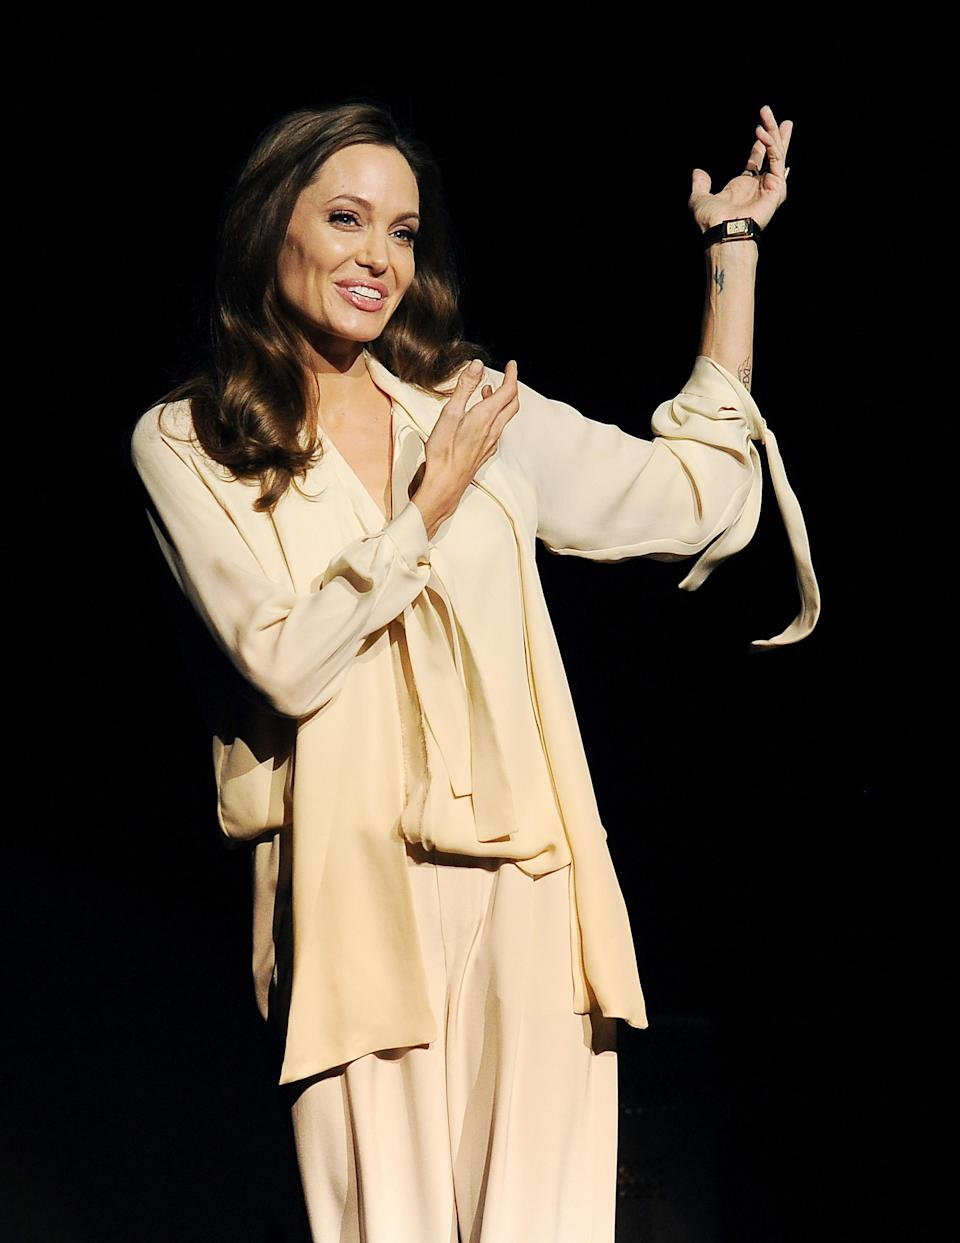 """Angelina Jolie, director of the upcoming film """"Unbroken,"""" introduces a trailer for the film during a surprise appearance onstage at a Universal Pictures studio presentation at CinemaCon 2014 on Tuesday, March 25, 2014 in Las Vegas. (Photo by Chris Pizzello/Invision/AP)"""